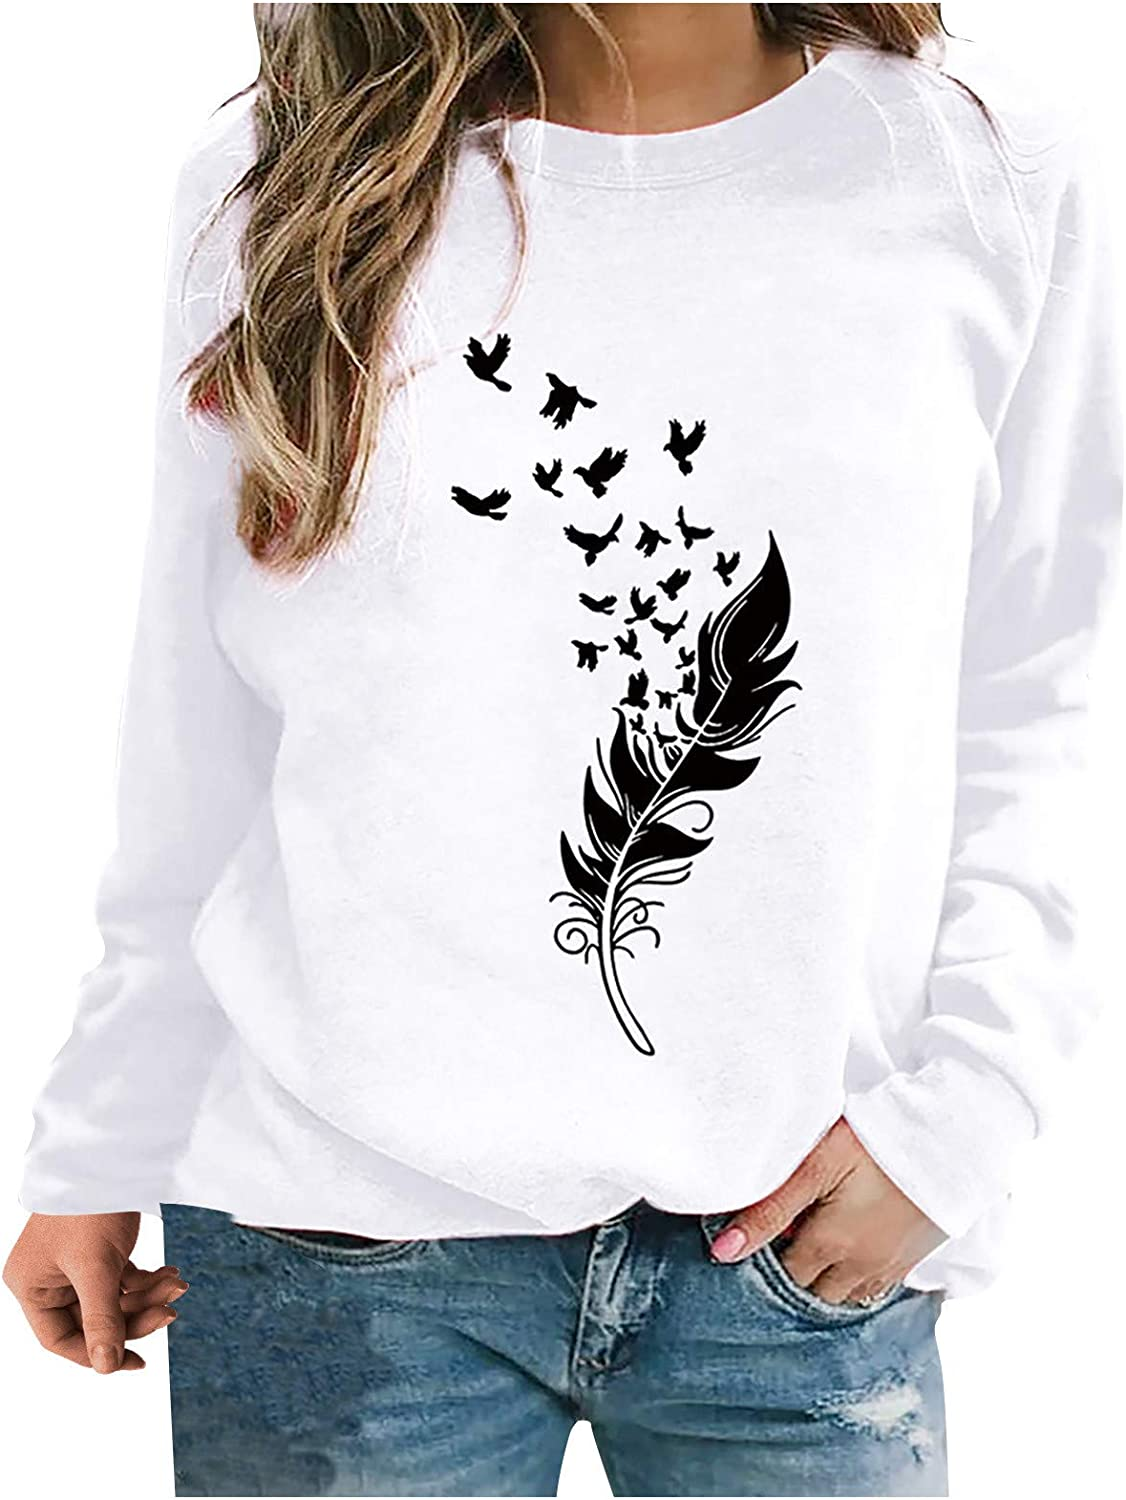 Sweatshirts for Women,Womens Long Sleeve Pullover Casual Vintage Feather Printed Plus Size Crewneck Sweatshirts